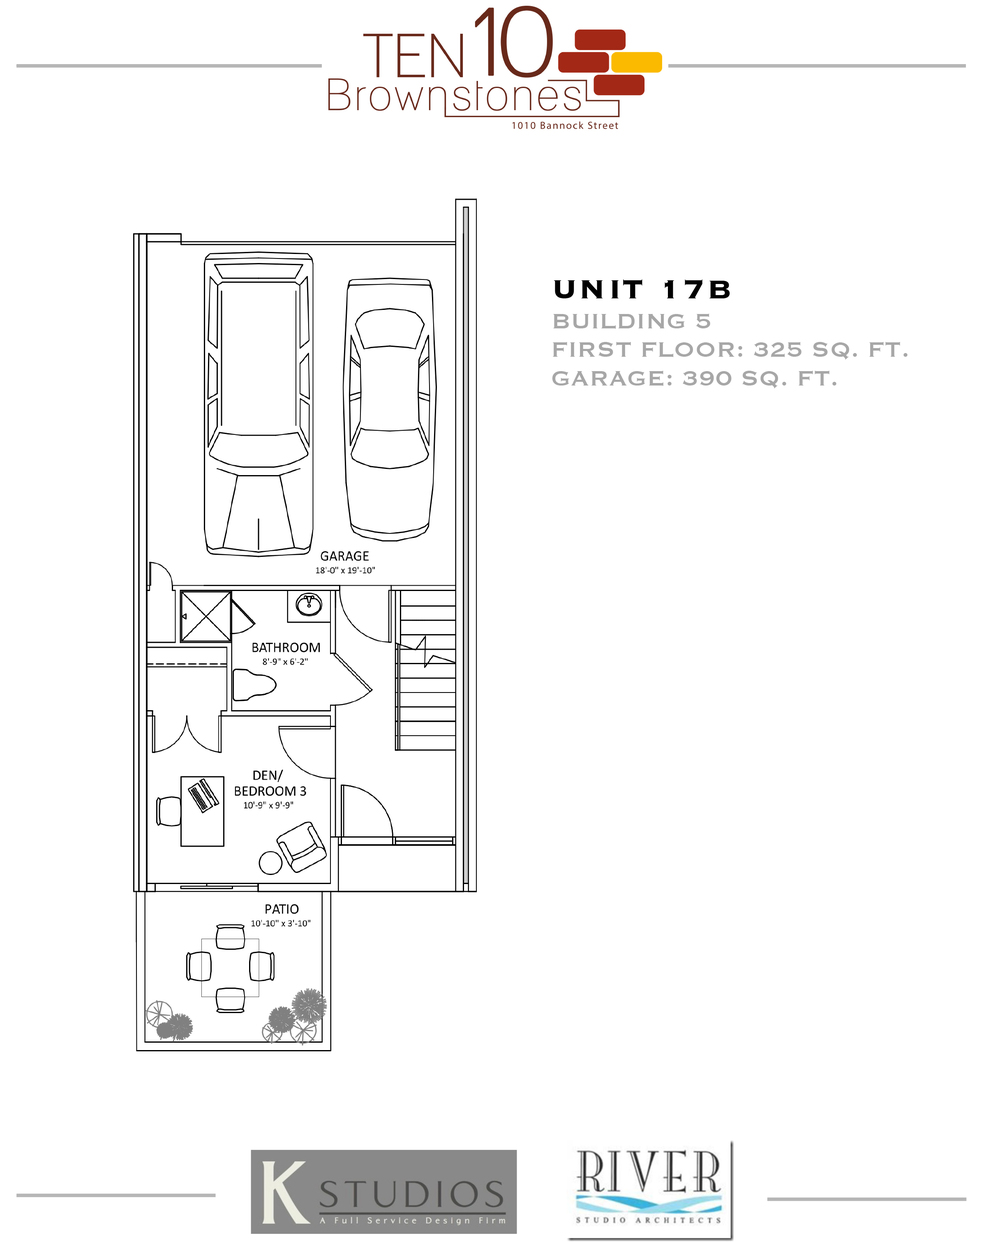 Click image to view & download Unit 17B floor plan